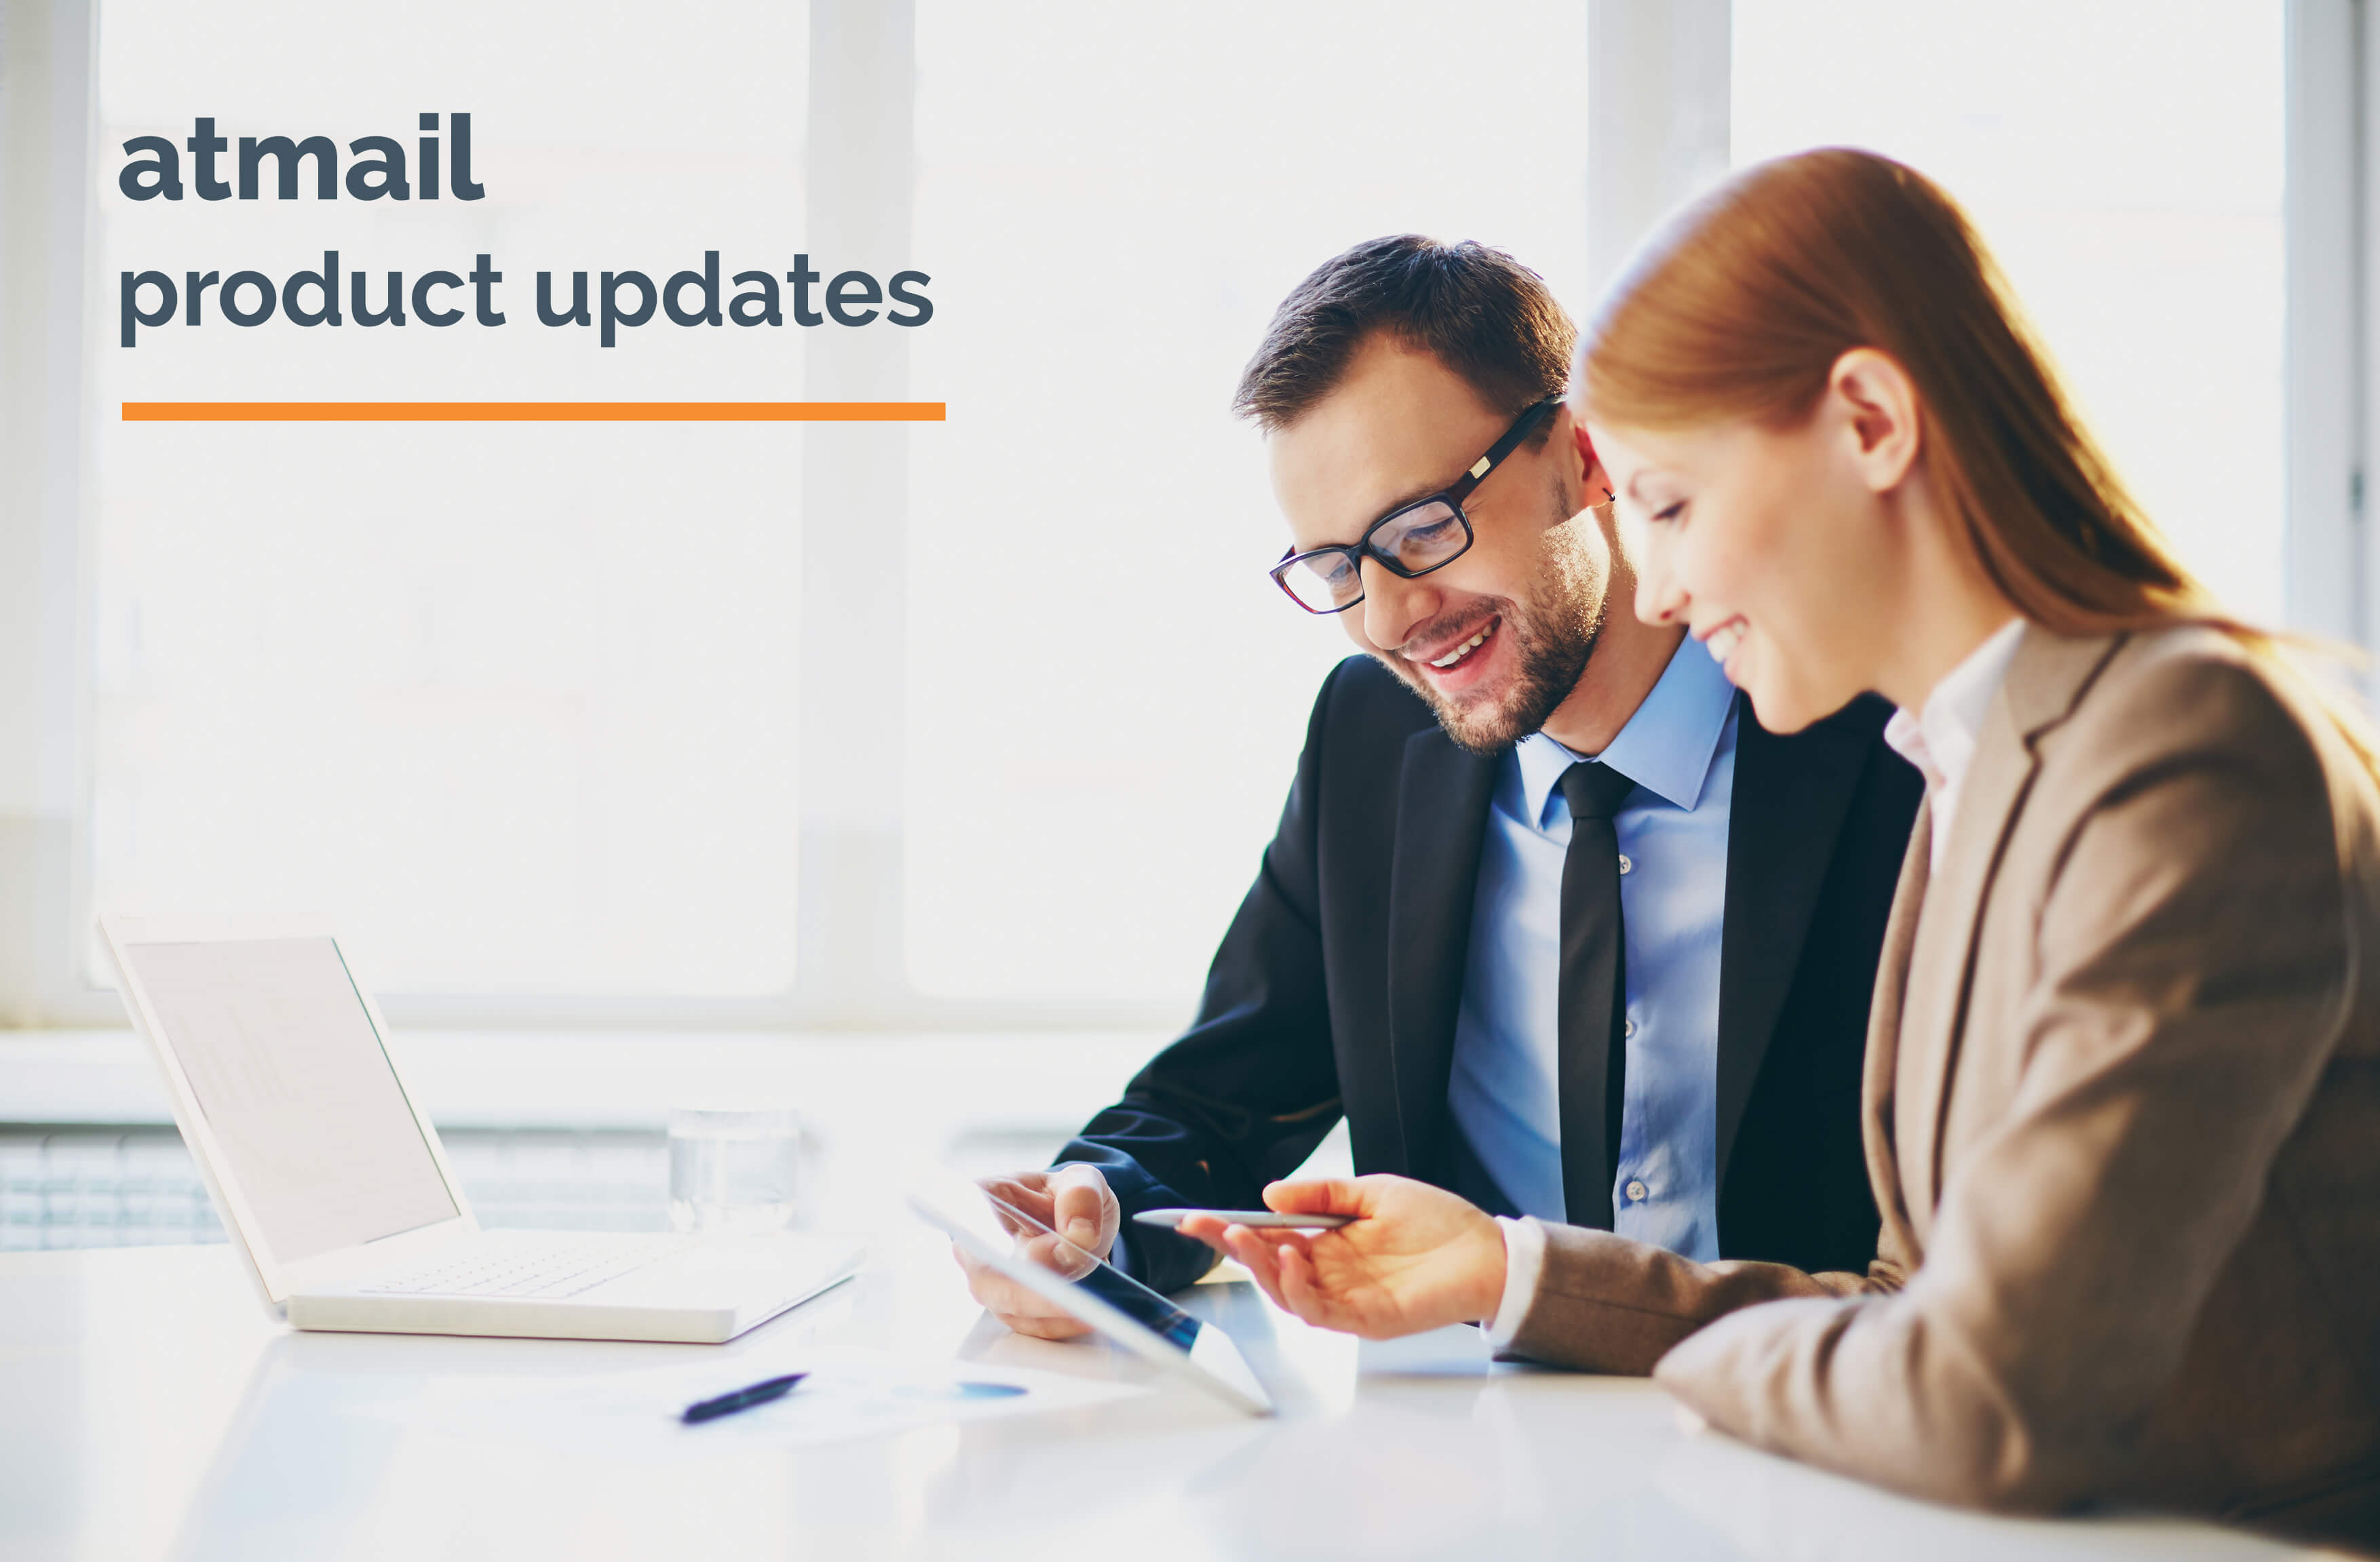 atmail product updates, atmail email experts, atmail email solutions, atmail product releases, atmail news